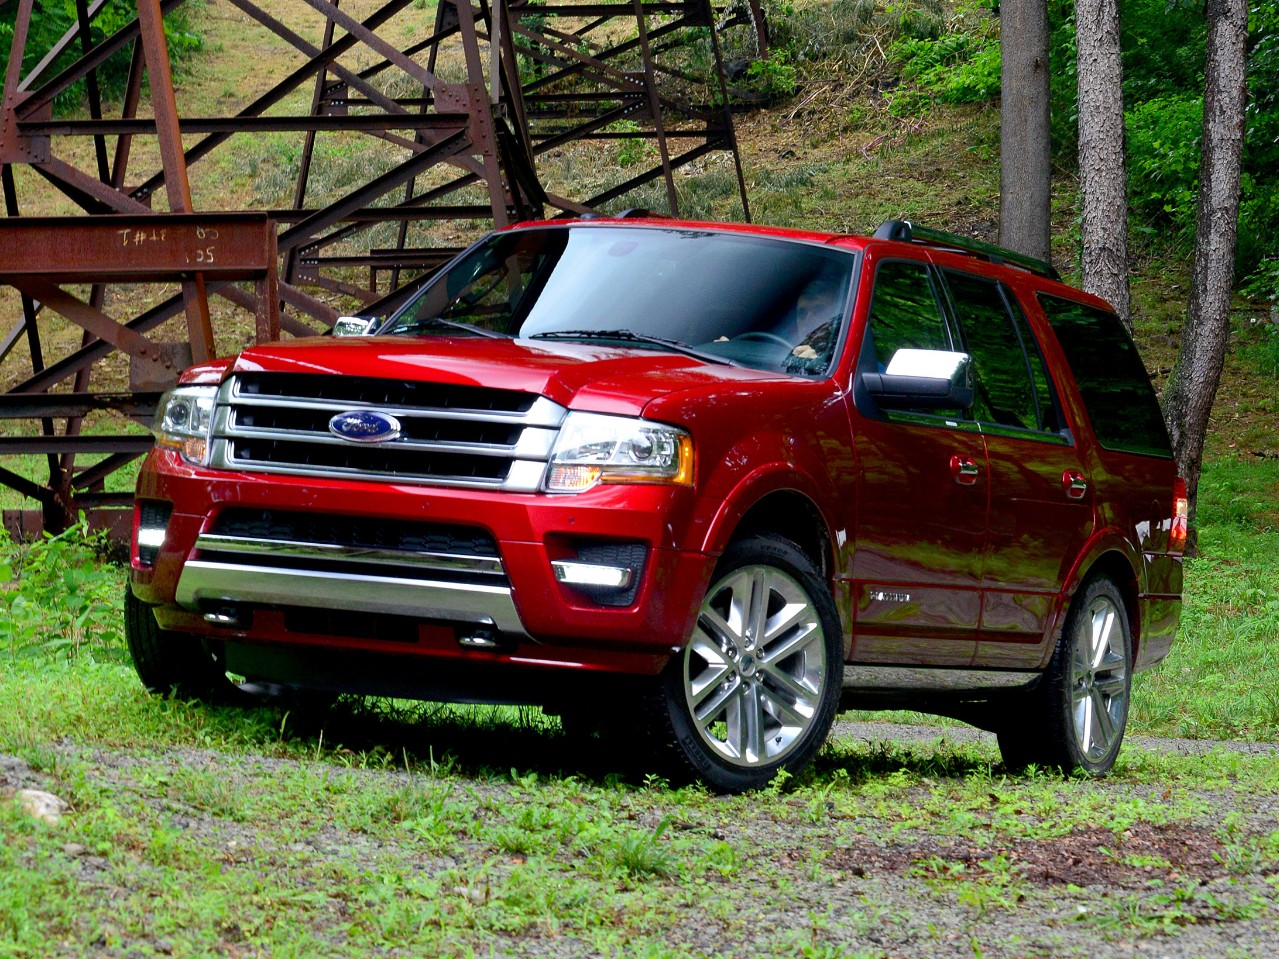 2015 Ford Expedition Red Exterior